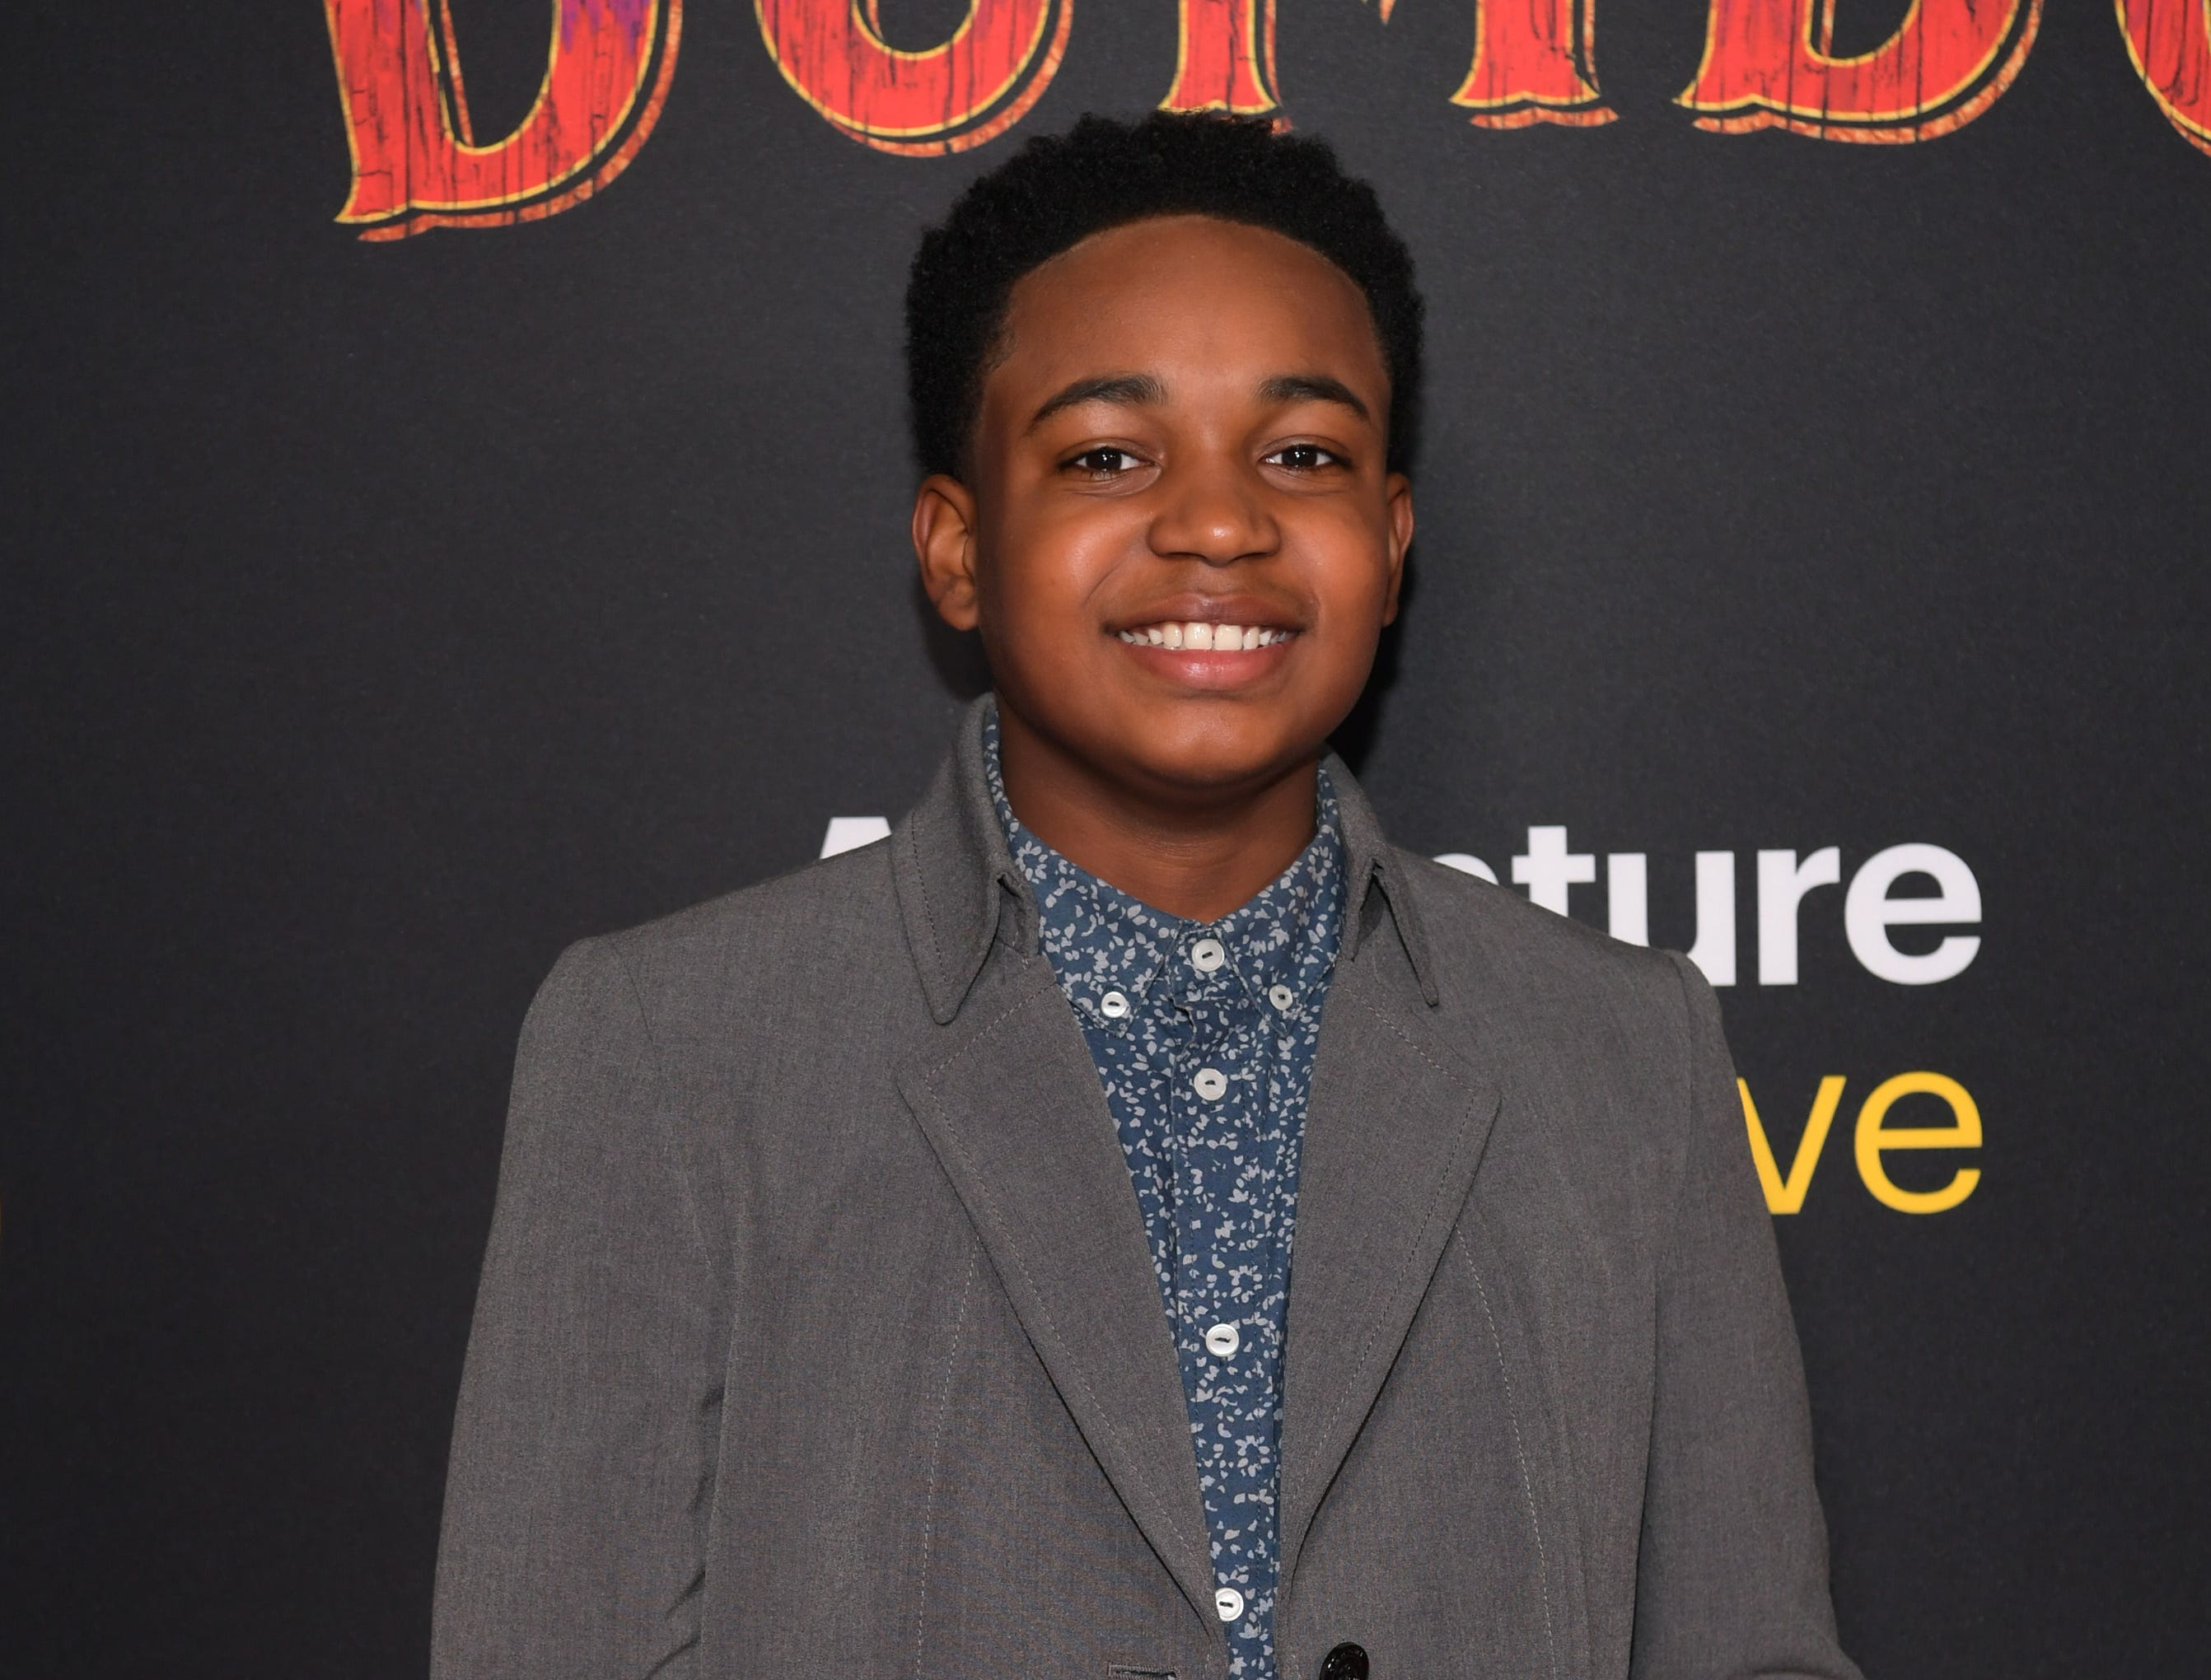 """LOS ANGELES, CALIFORNIA - MARCH 11: Issac Ryan Brown attends the premiere of Disney's """"Dumbo"""" at El Capitan Theatre on March 11, 2019 in Los Angeles, California. (Photo by Emma McIntyre/Getty Images) ORG XMIT: 775305572 ORIG FILE ID: 1135230391"""